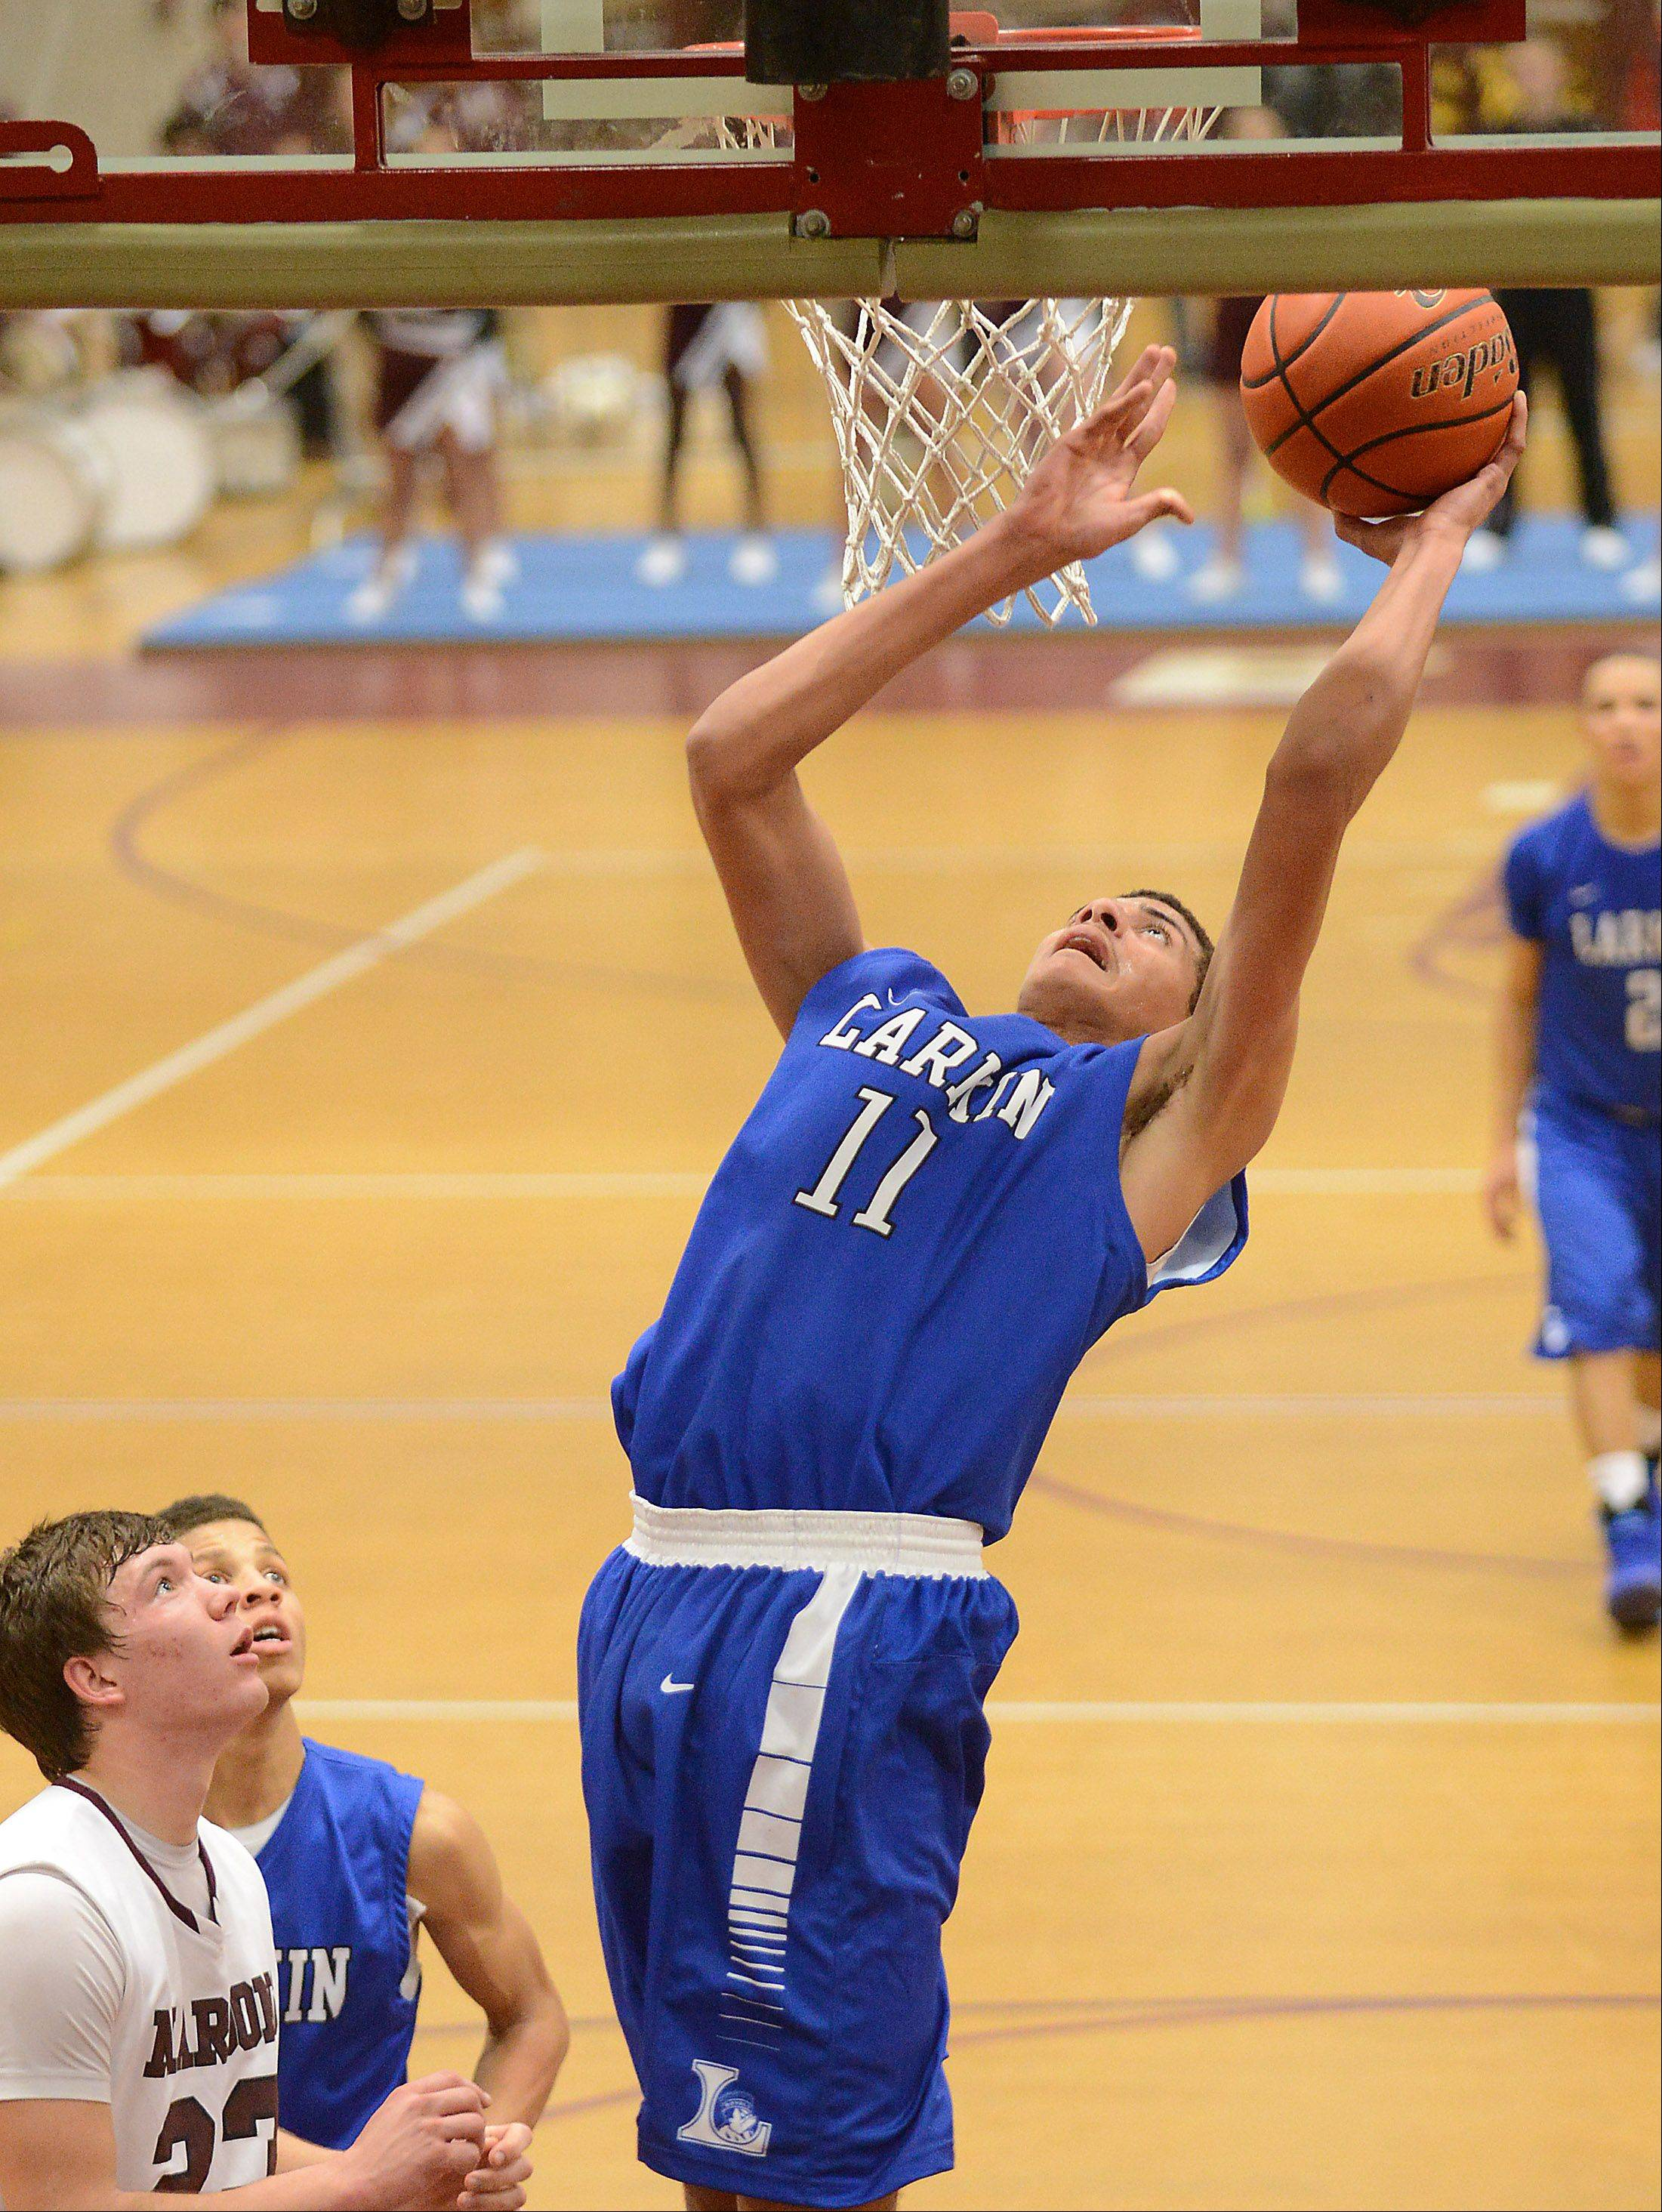 Larkin's Christian Negron goes up alone under the basket.